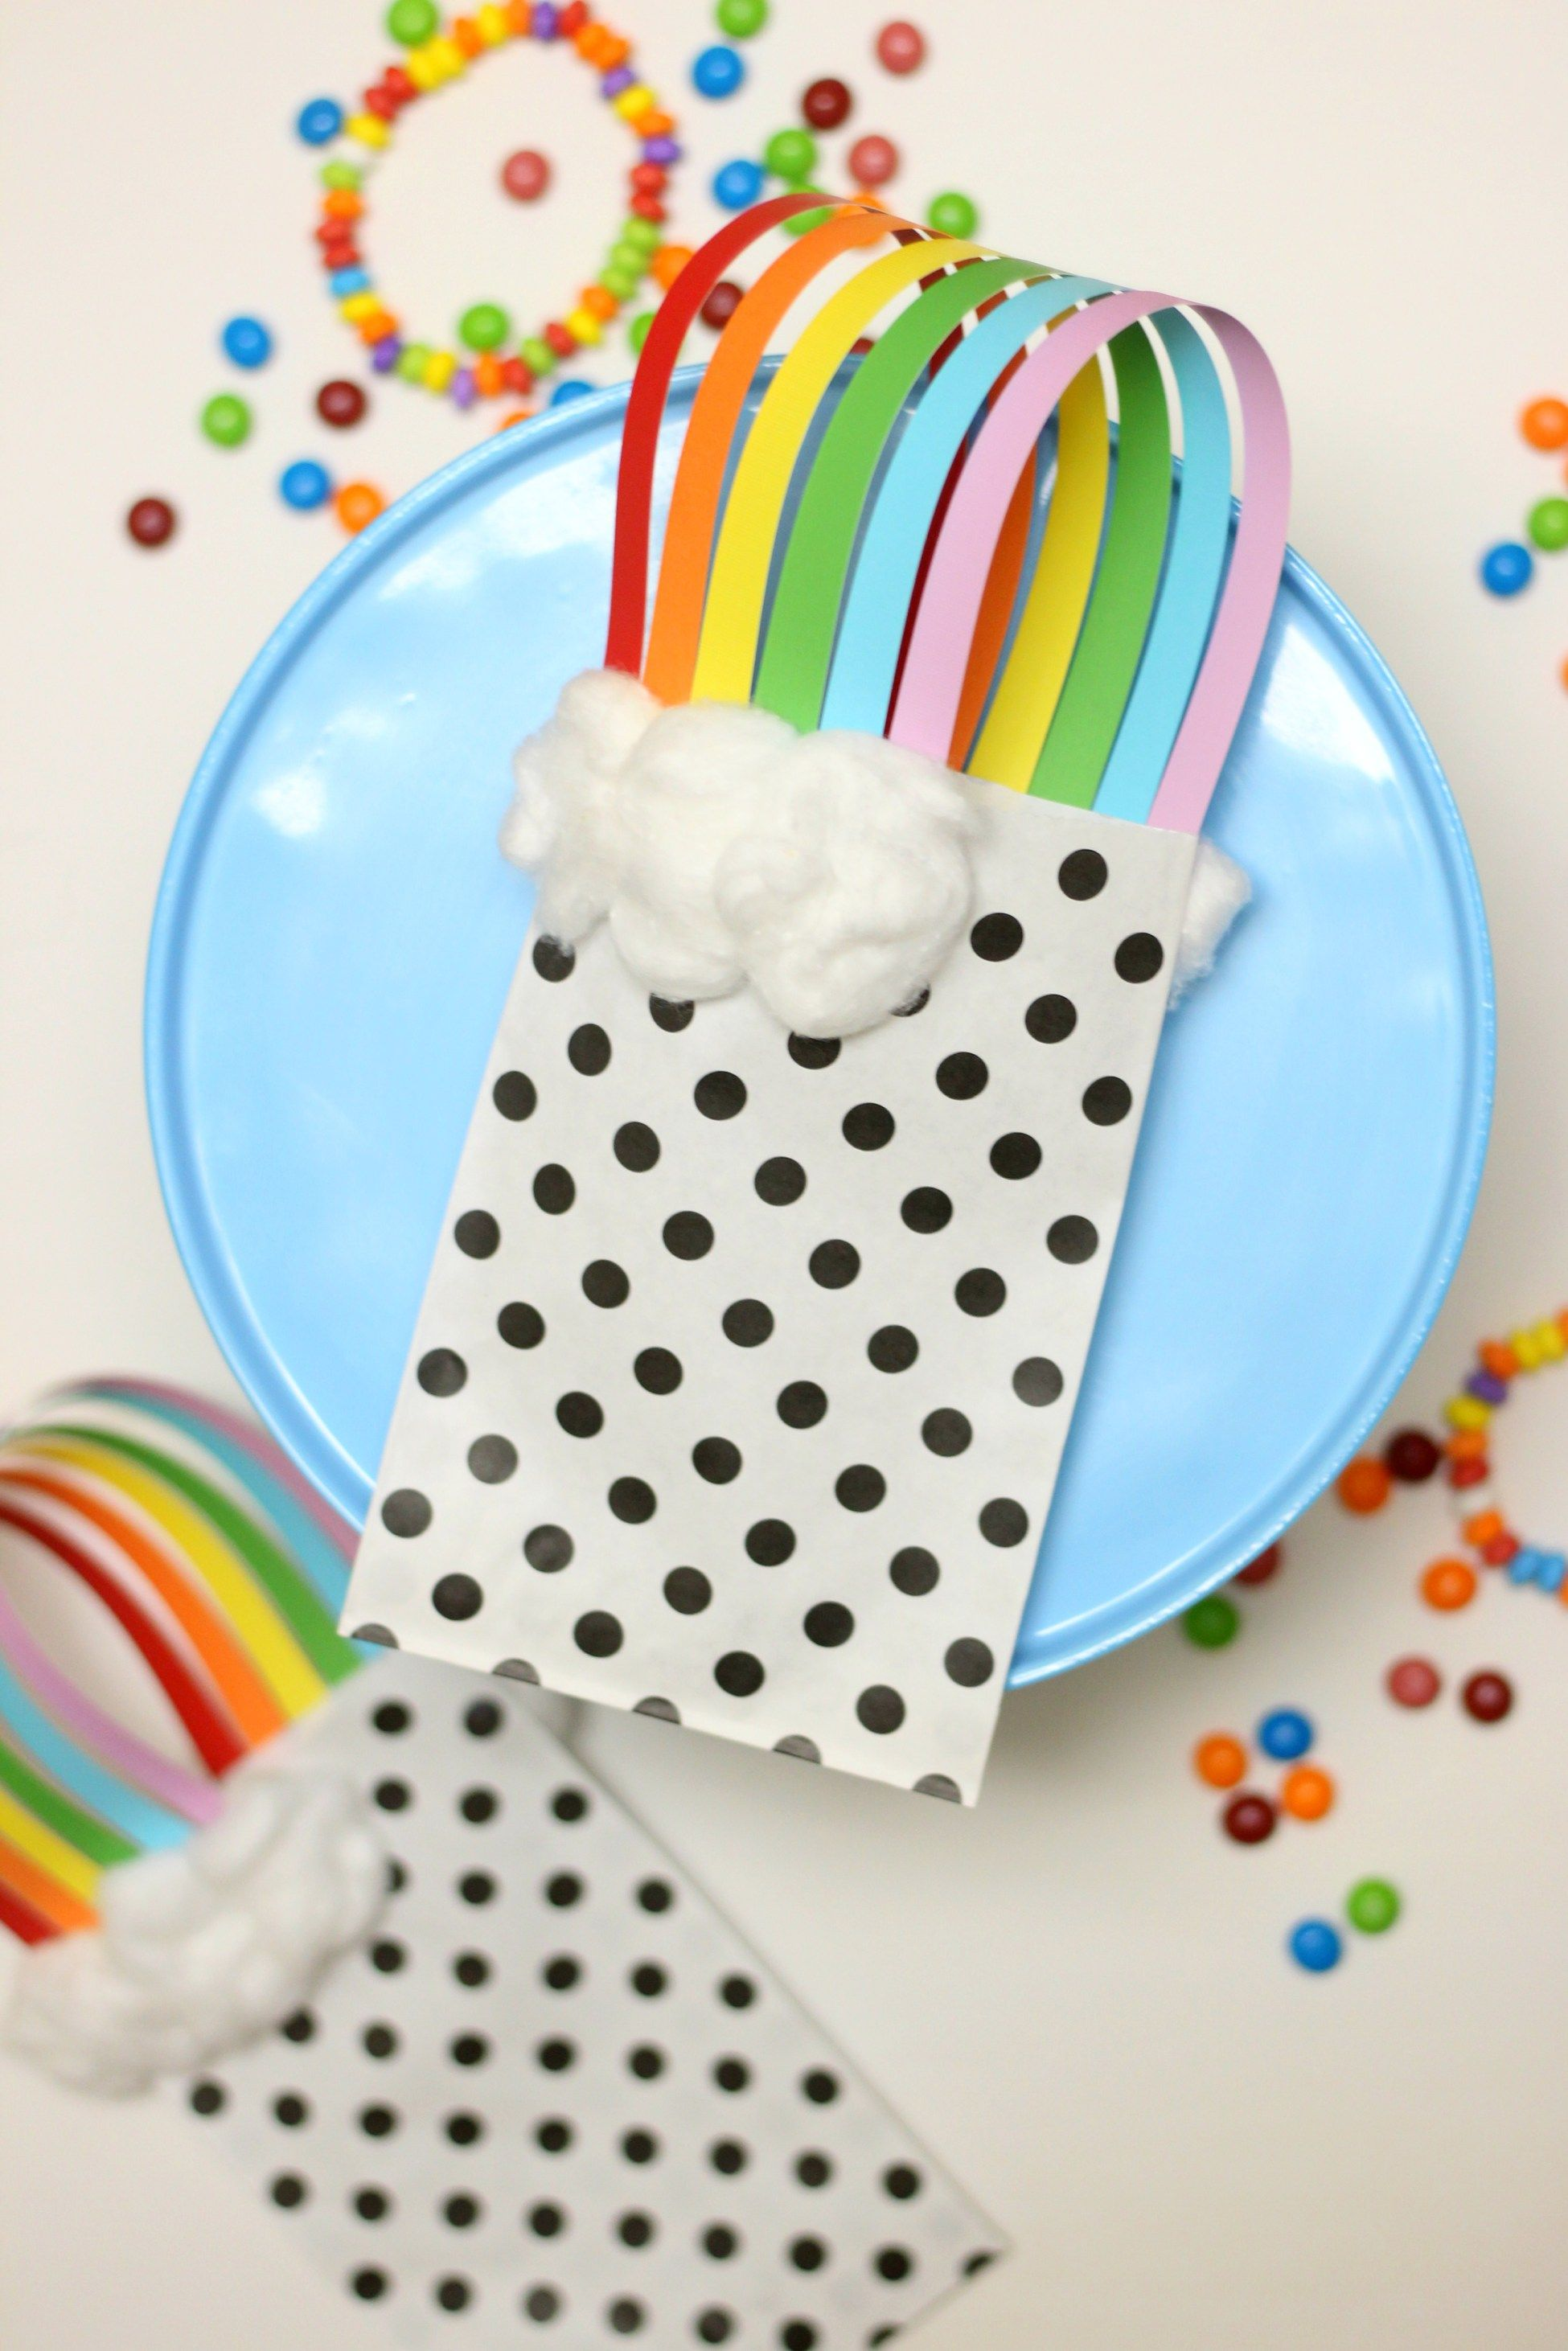 Rainbow Treat Bags for St. Patrick's Day or Rainbow Theme Party Favors